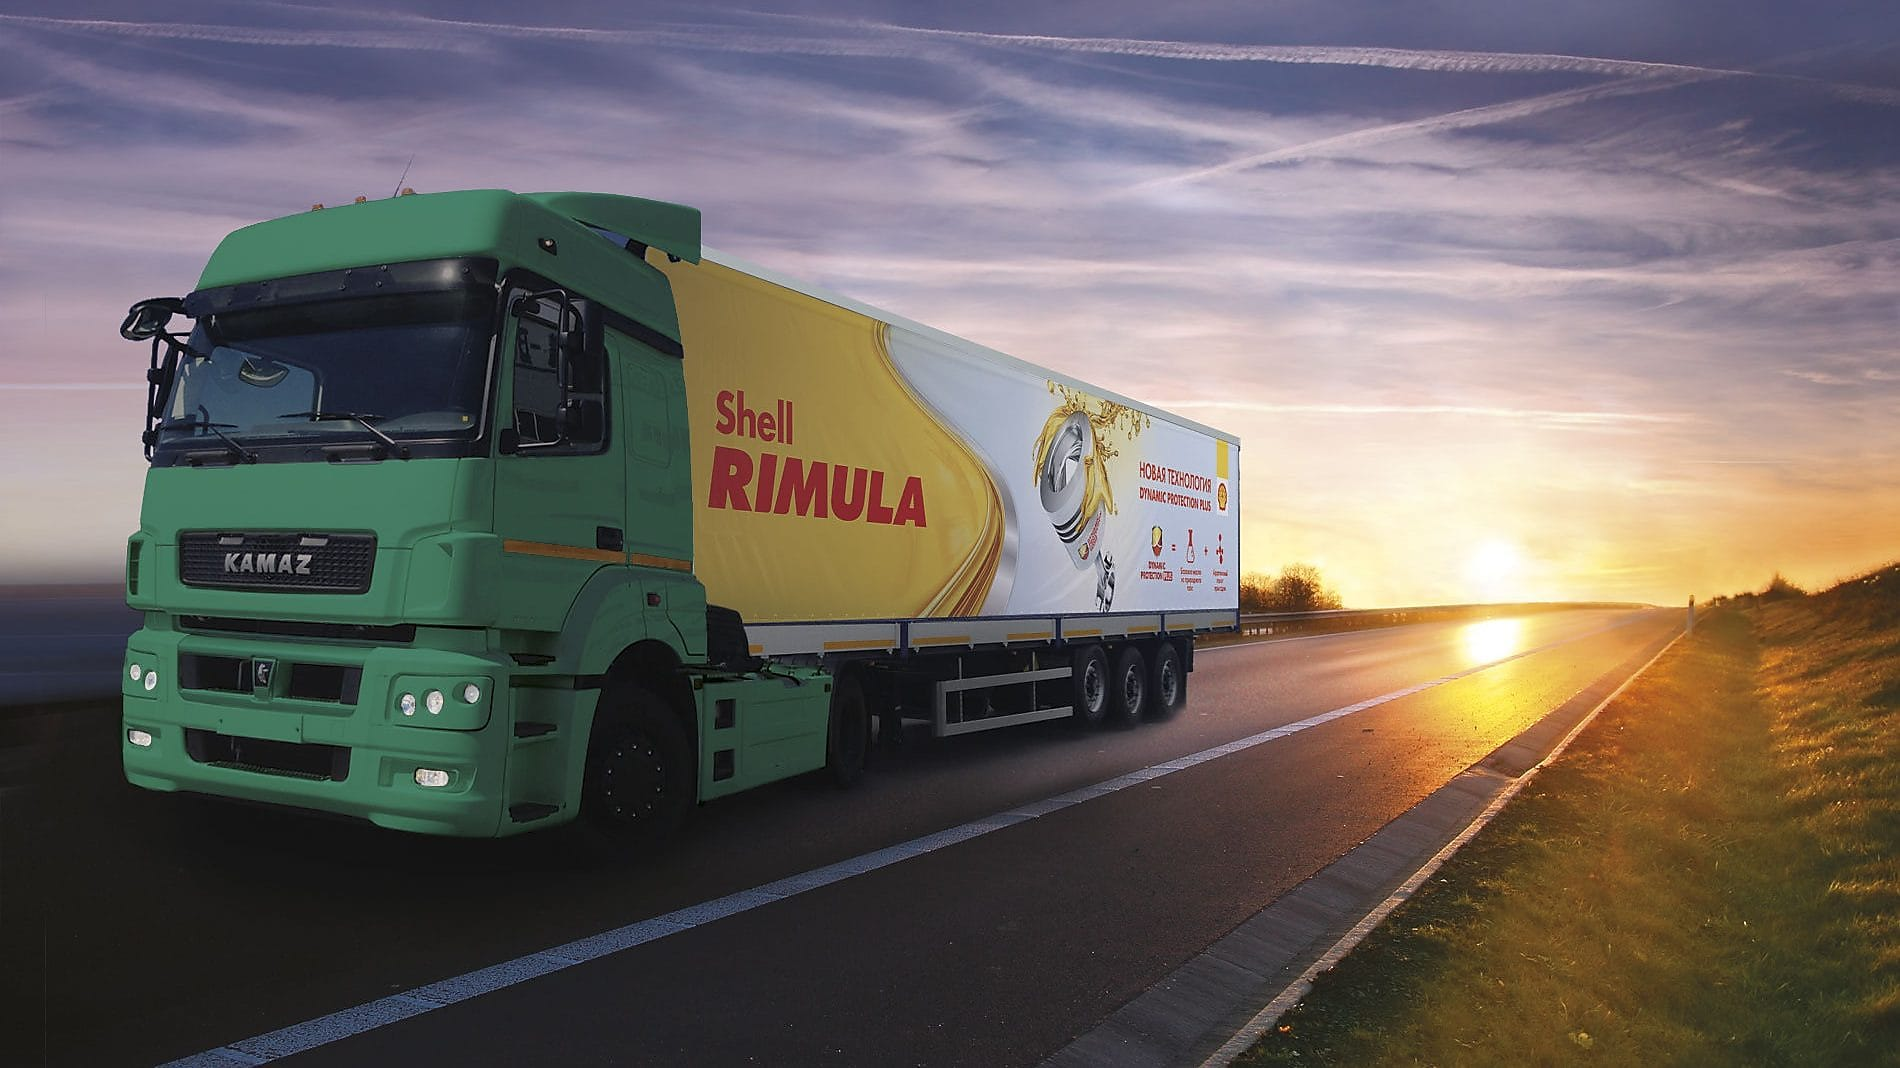 Shell Rimula Advanced Multi-Grade Oils